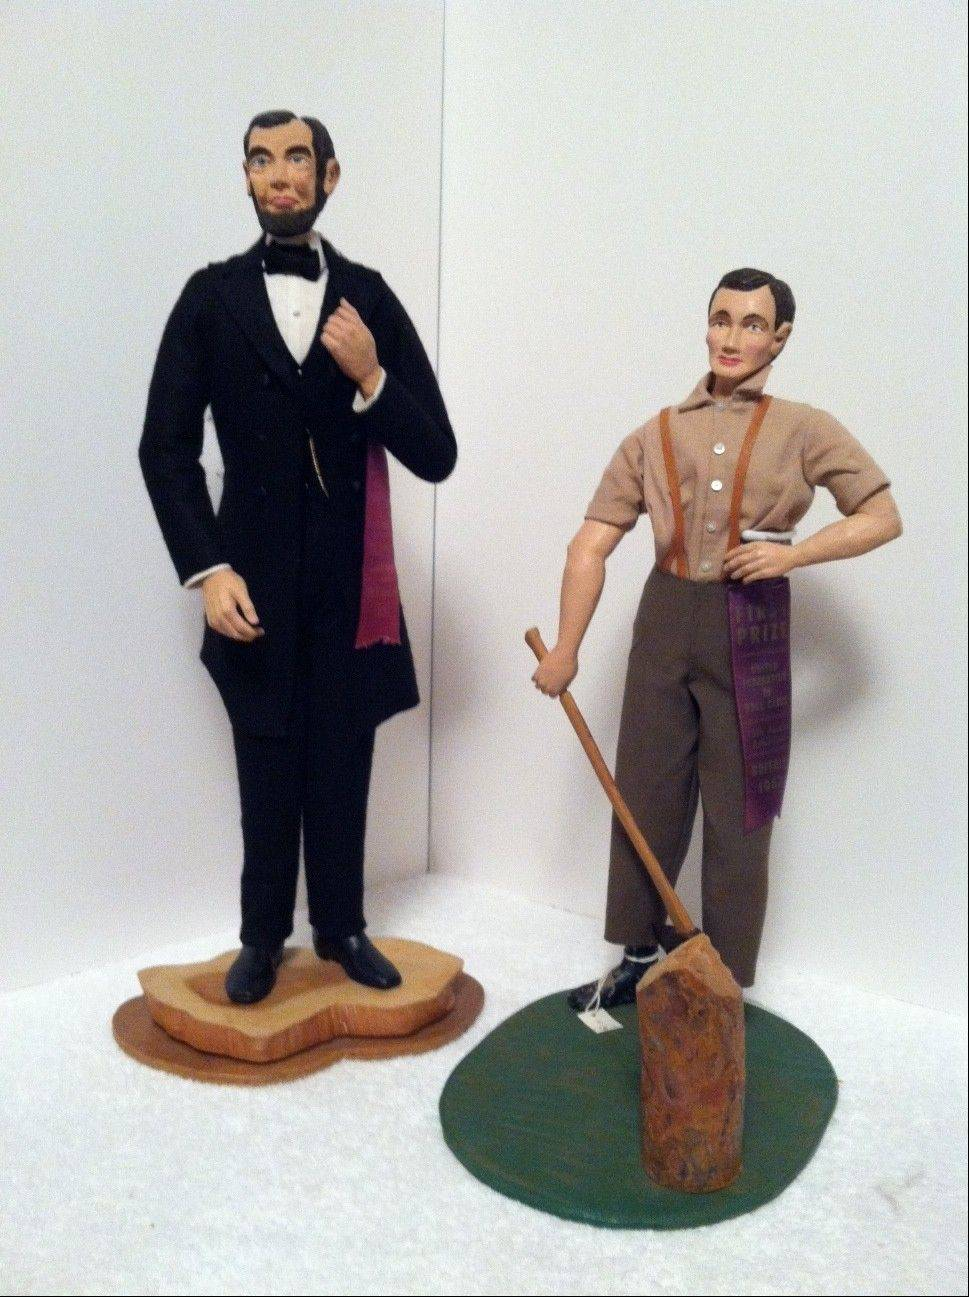 Martha Mills made these dolls of President Abraham Lincoln, 1957, and Young Abraham Lincoln, 1962. Both were awarded first prize ribbons by the United Federation of Doll Clubs.